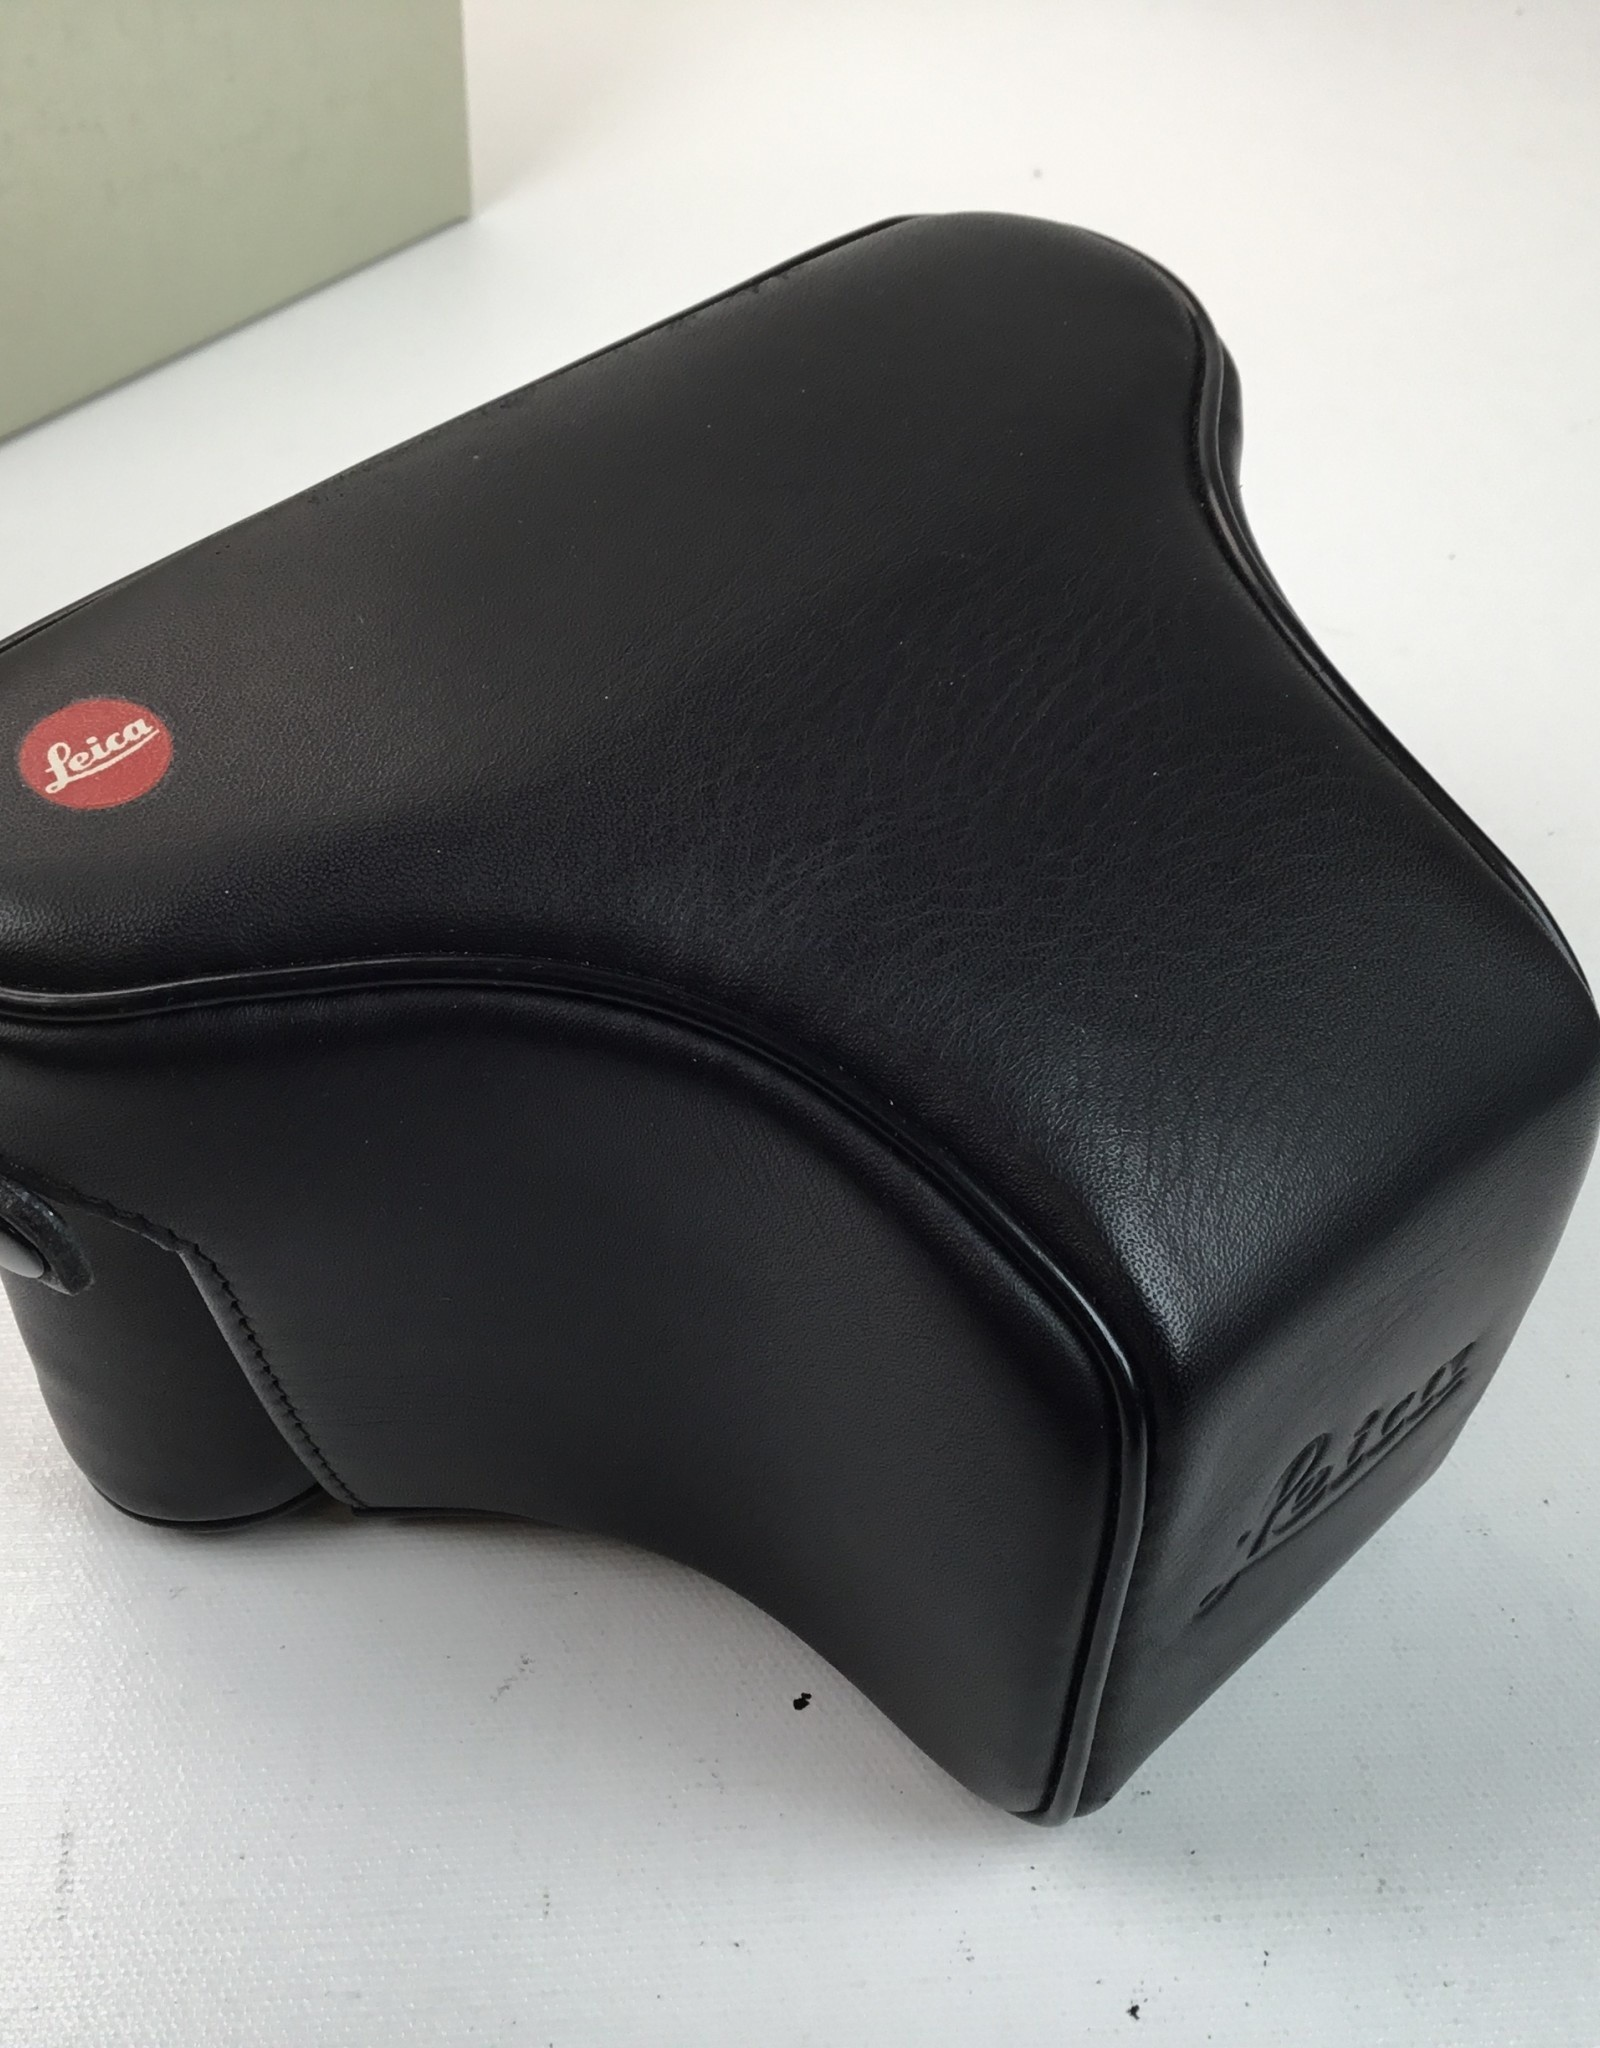 Leica Leica Ever Ready Case for M6 Black Leather in Box Used EX+